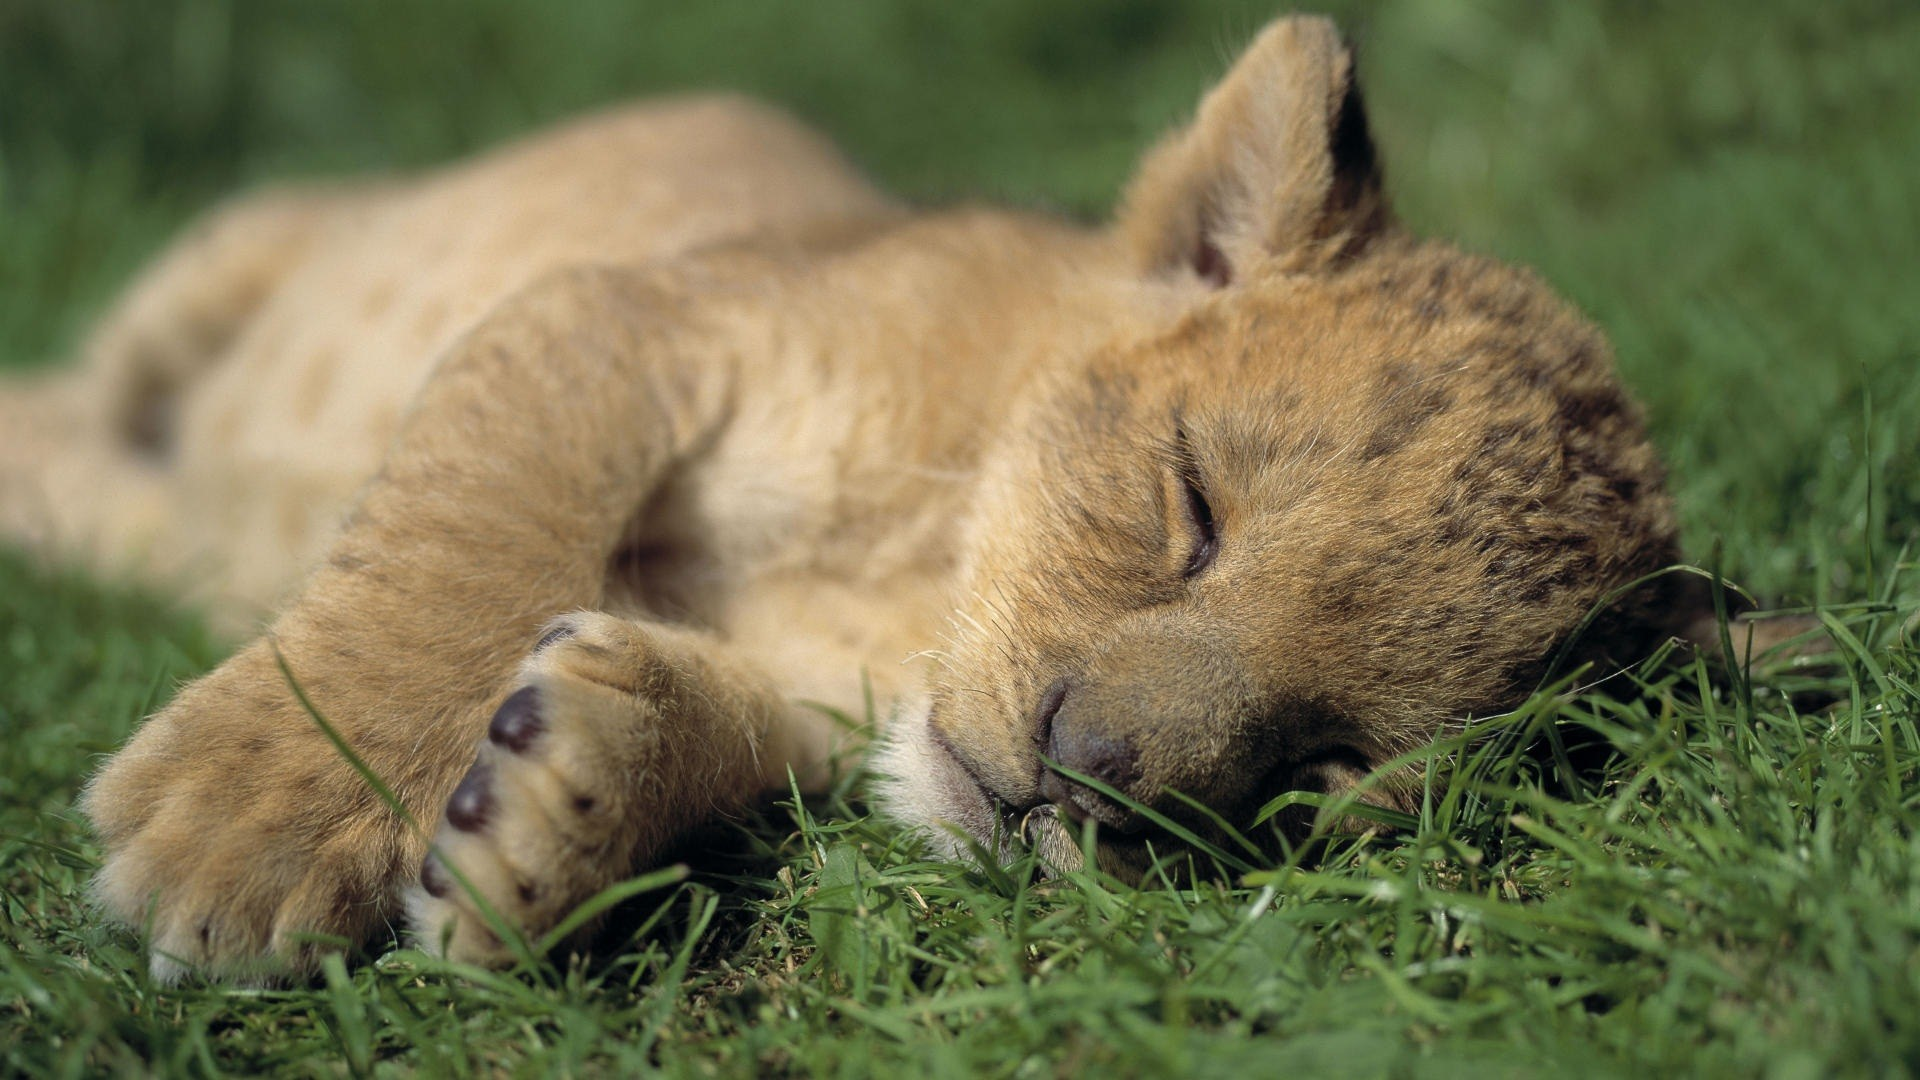 Cute Baby Lion Cub Sleeping Nicely HD Wallpaper HD Wallpapers 1920x1080